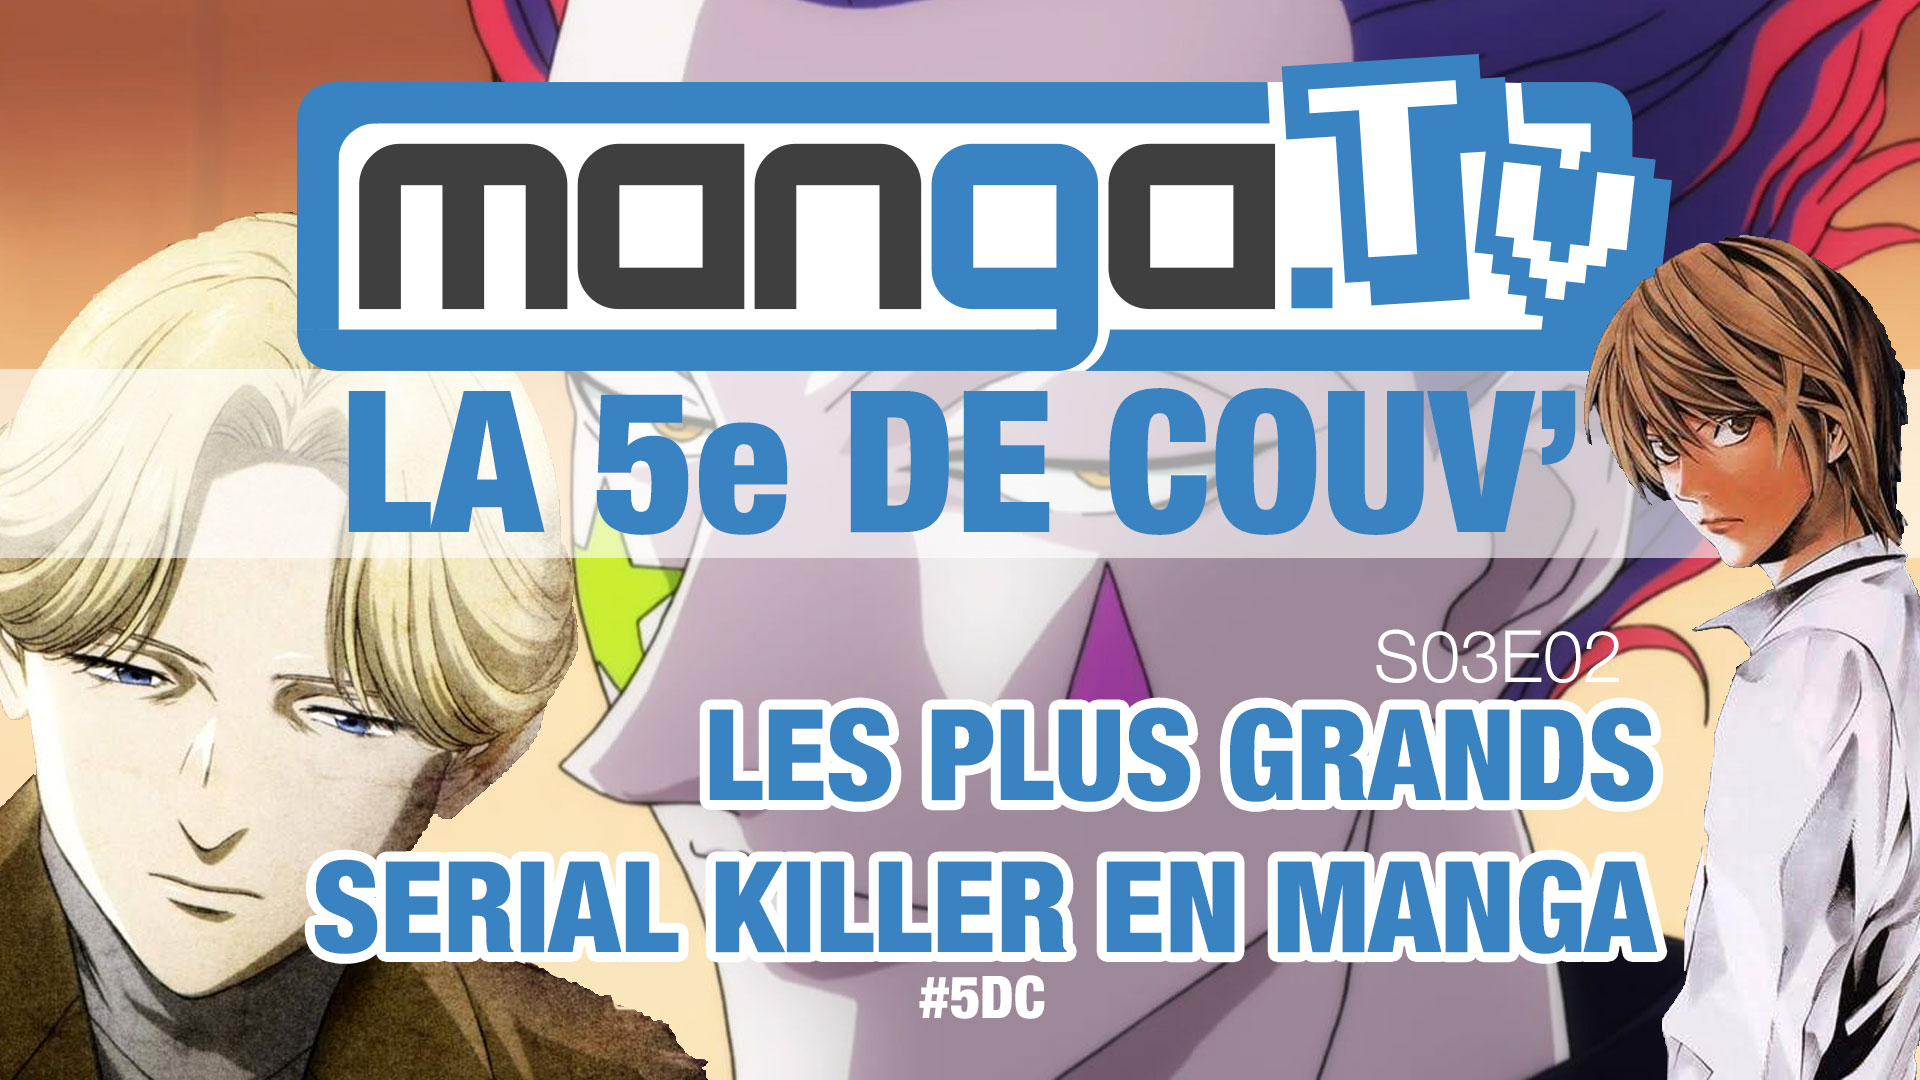 La-5e-de-couv'-le-podcast-de-Manga.Tv-Saison-3-Episode-2-#5DC-intégrale-SERIAL-KILLER-manga.tv-mediaku-5emedecouv-podcast